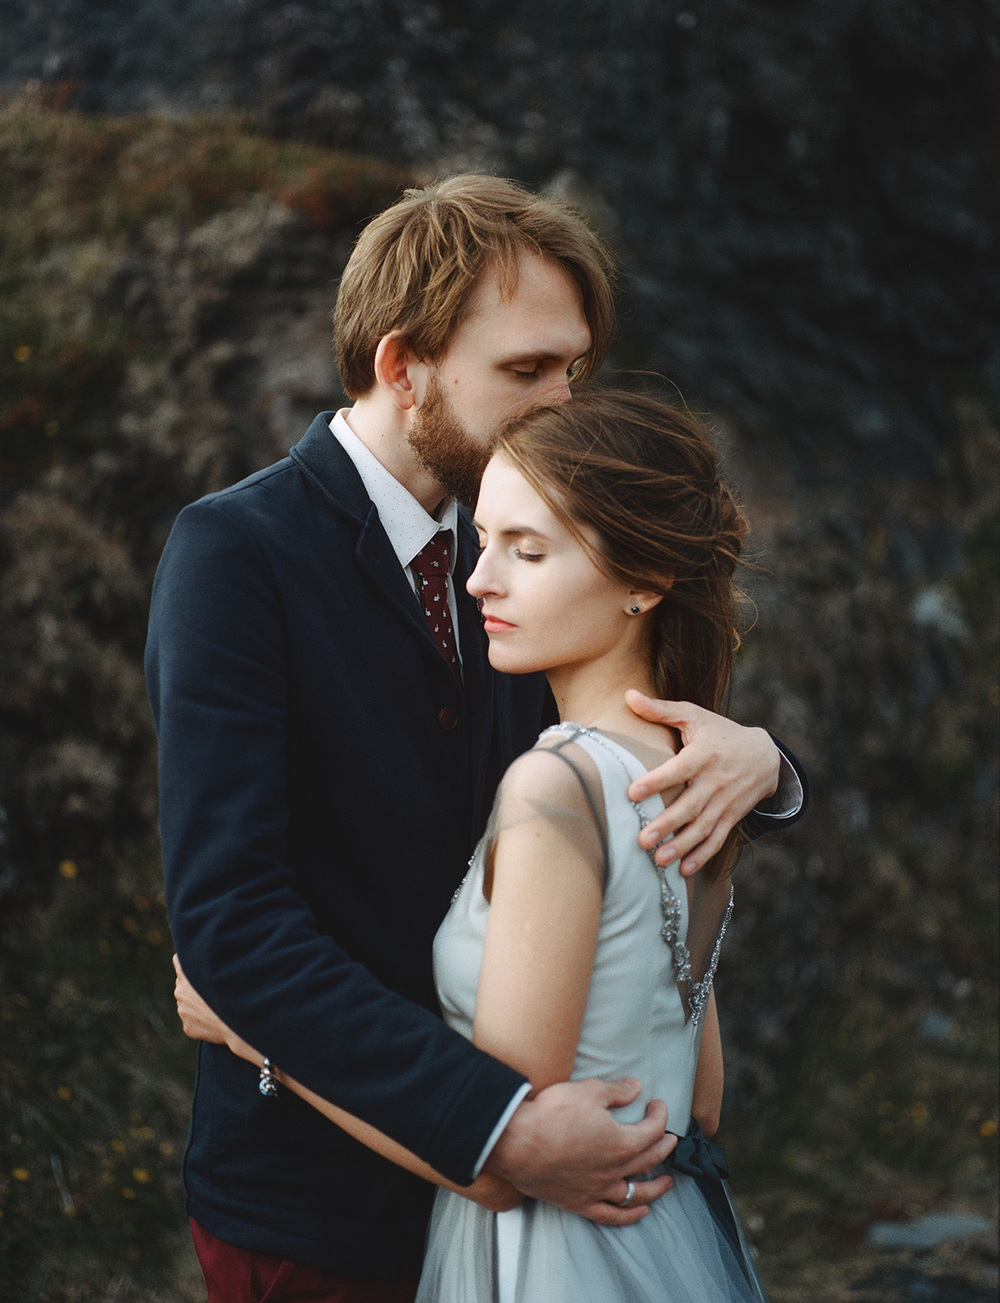 jestcafe.com-wedding_in_iceland96